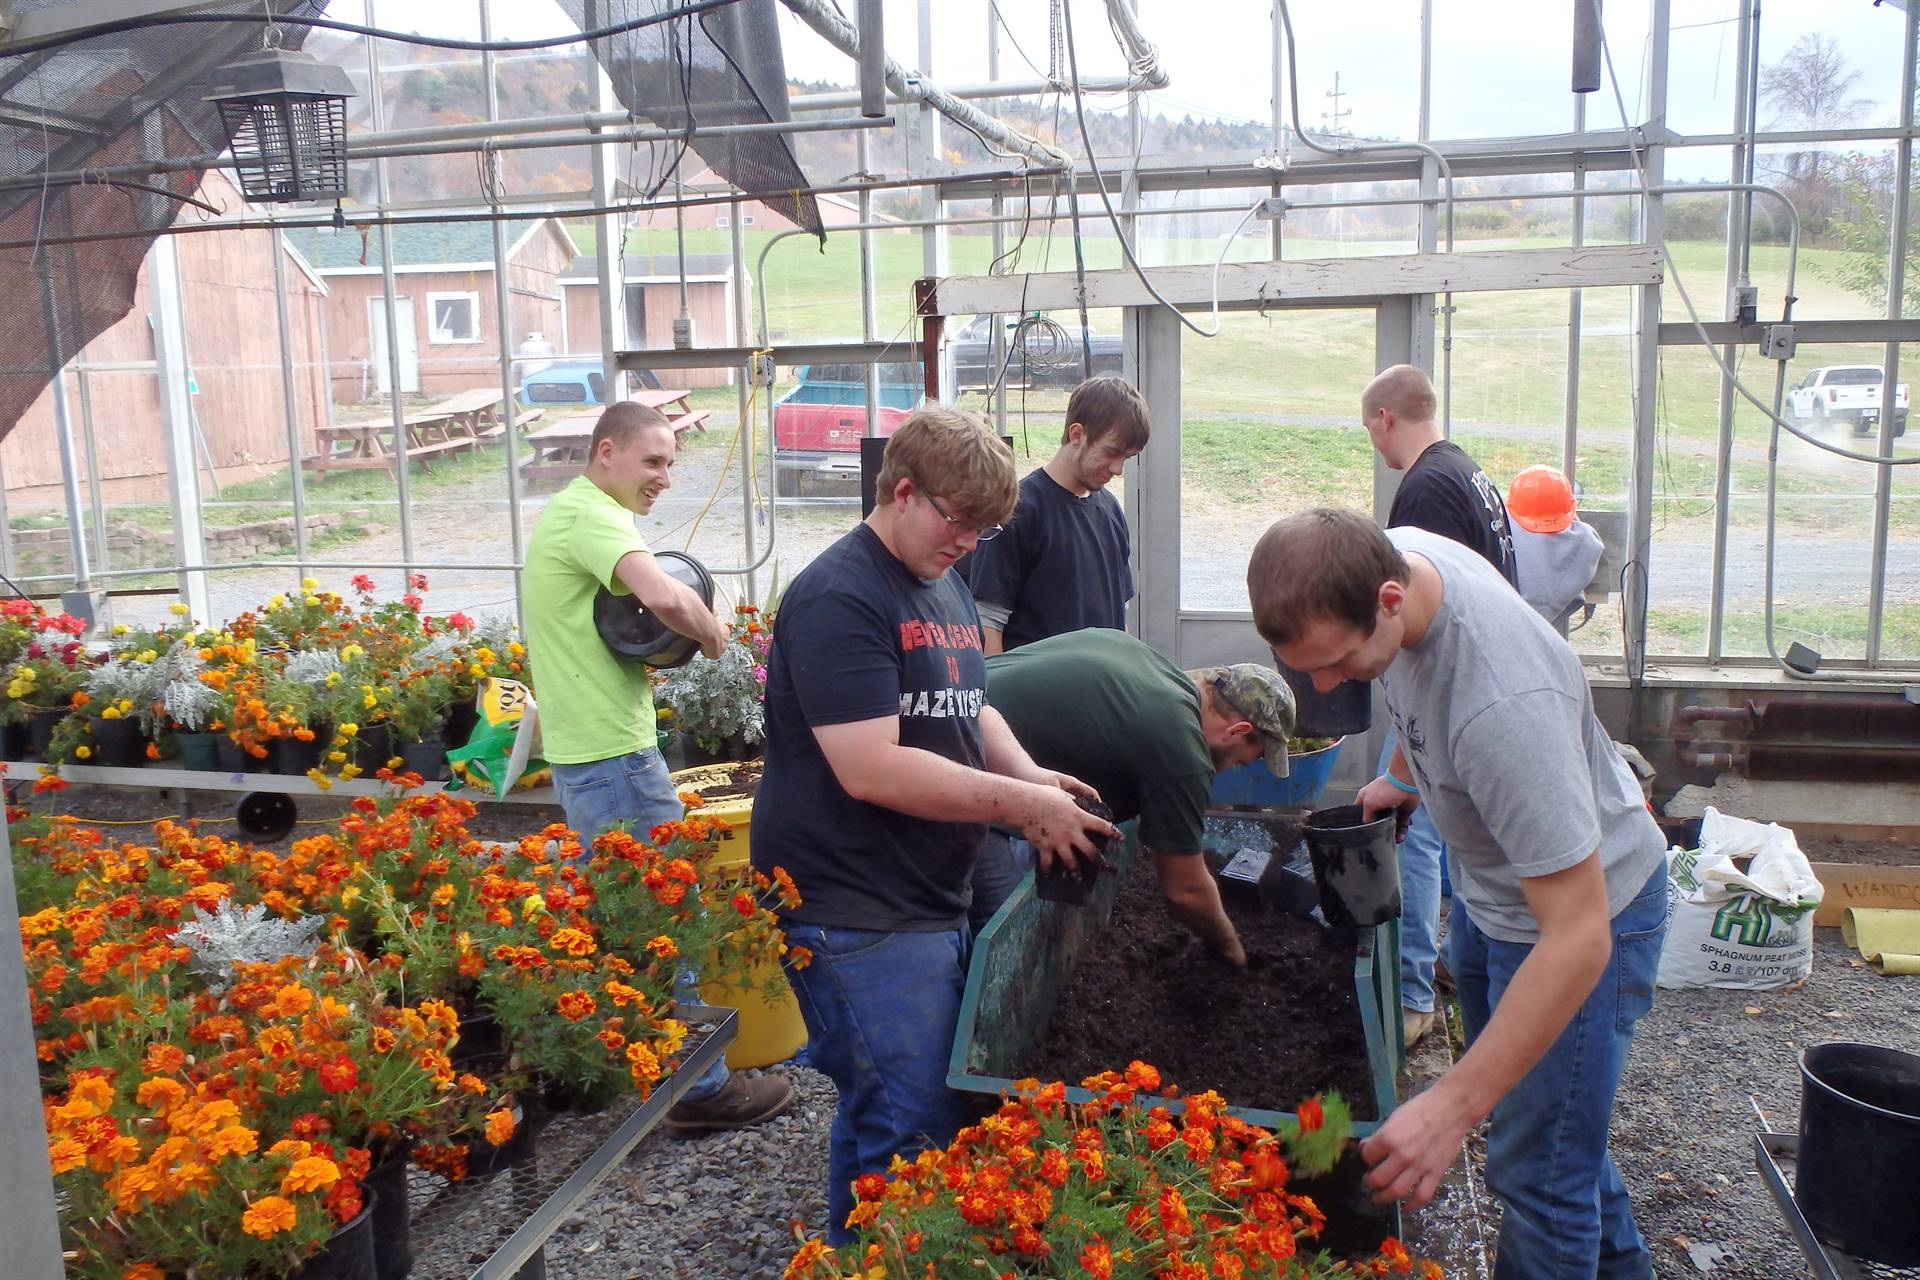 Conservation students planting flowers